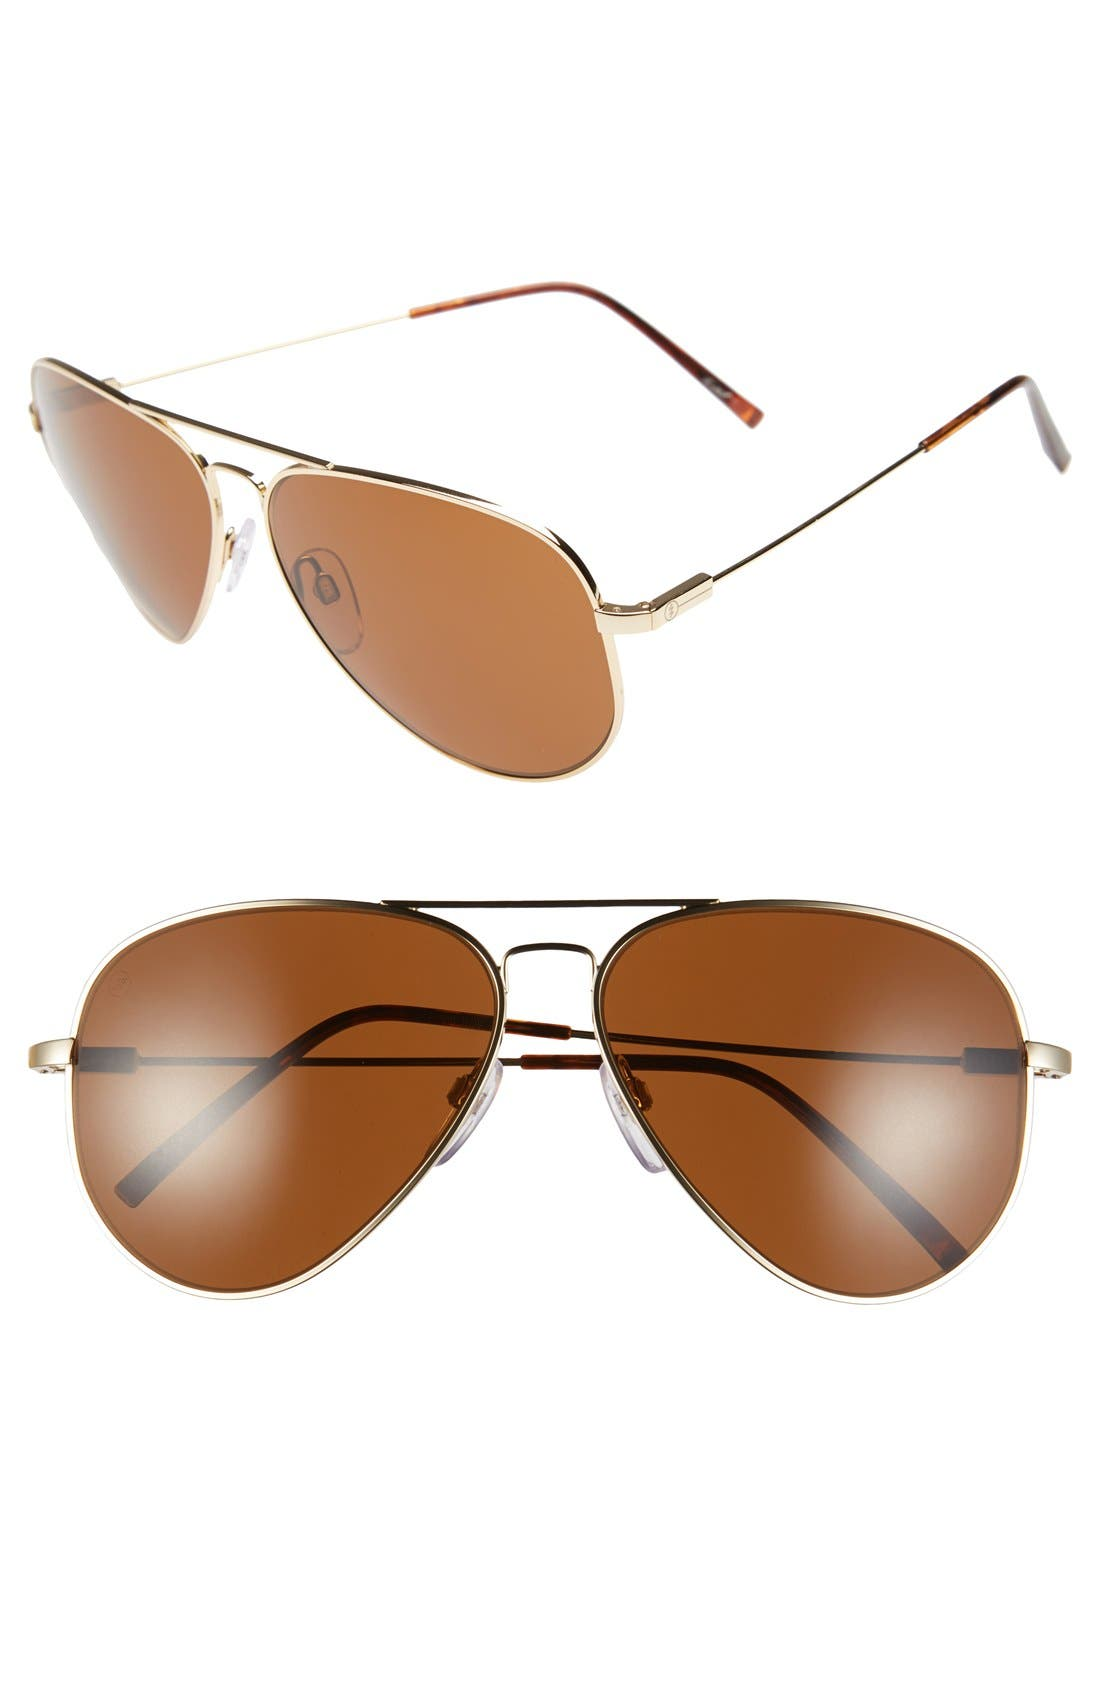 'AV1 XL' 62mm Aviator Sunglasses,                         Main,                         color, GOLD/ BRONZE